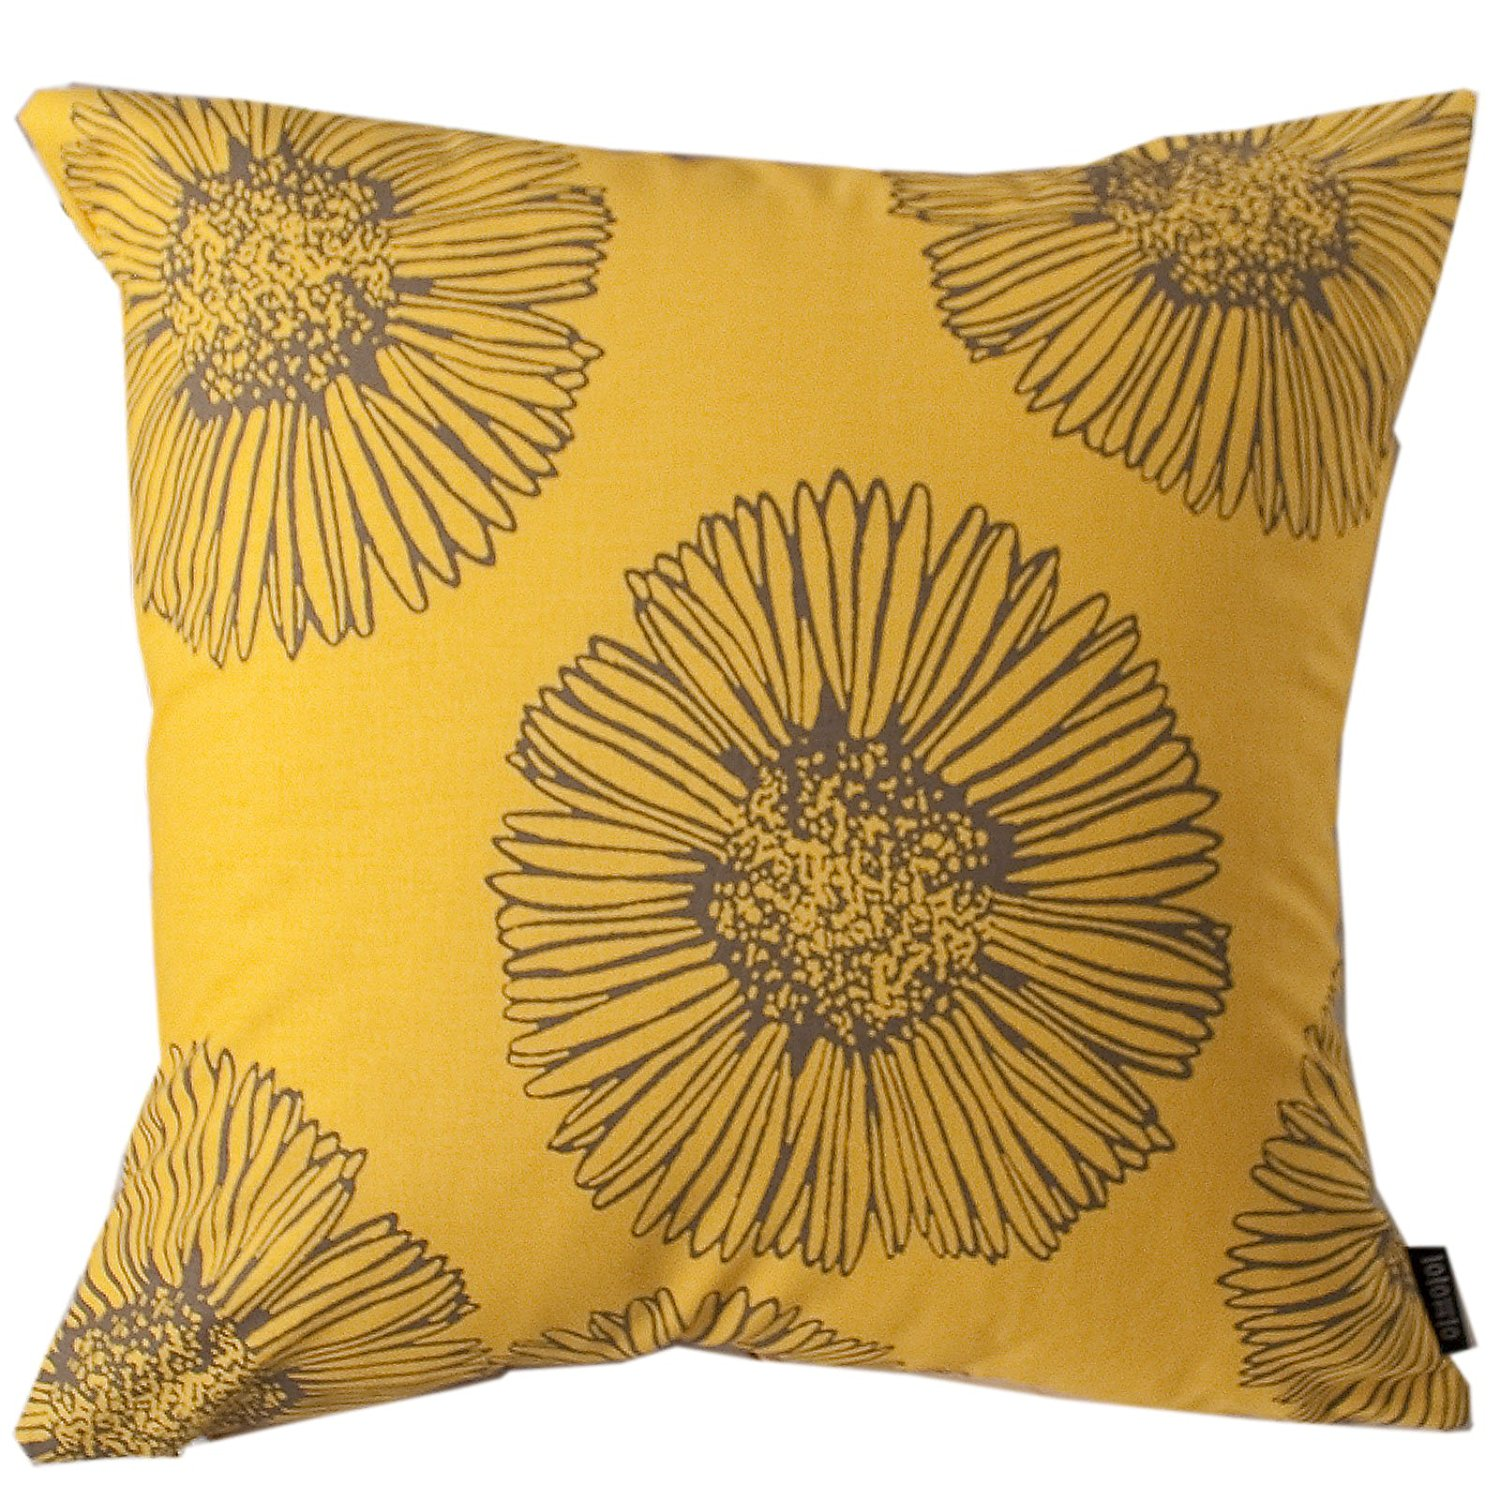 """Evei Big Flowers Pattern Gold Color Cotton Home Decorative Throw Pillow Case / Cushion Cover Square 16"""" 18"""" 20"""" Choice (16""""x16""""inch(40x40cm))"""